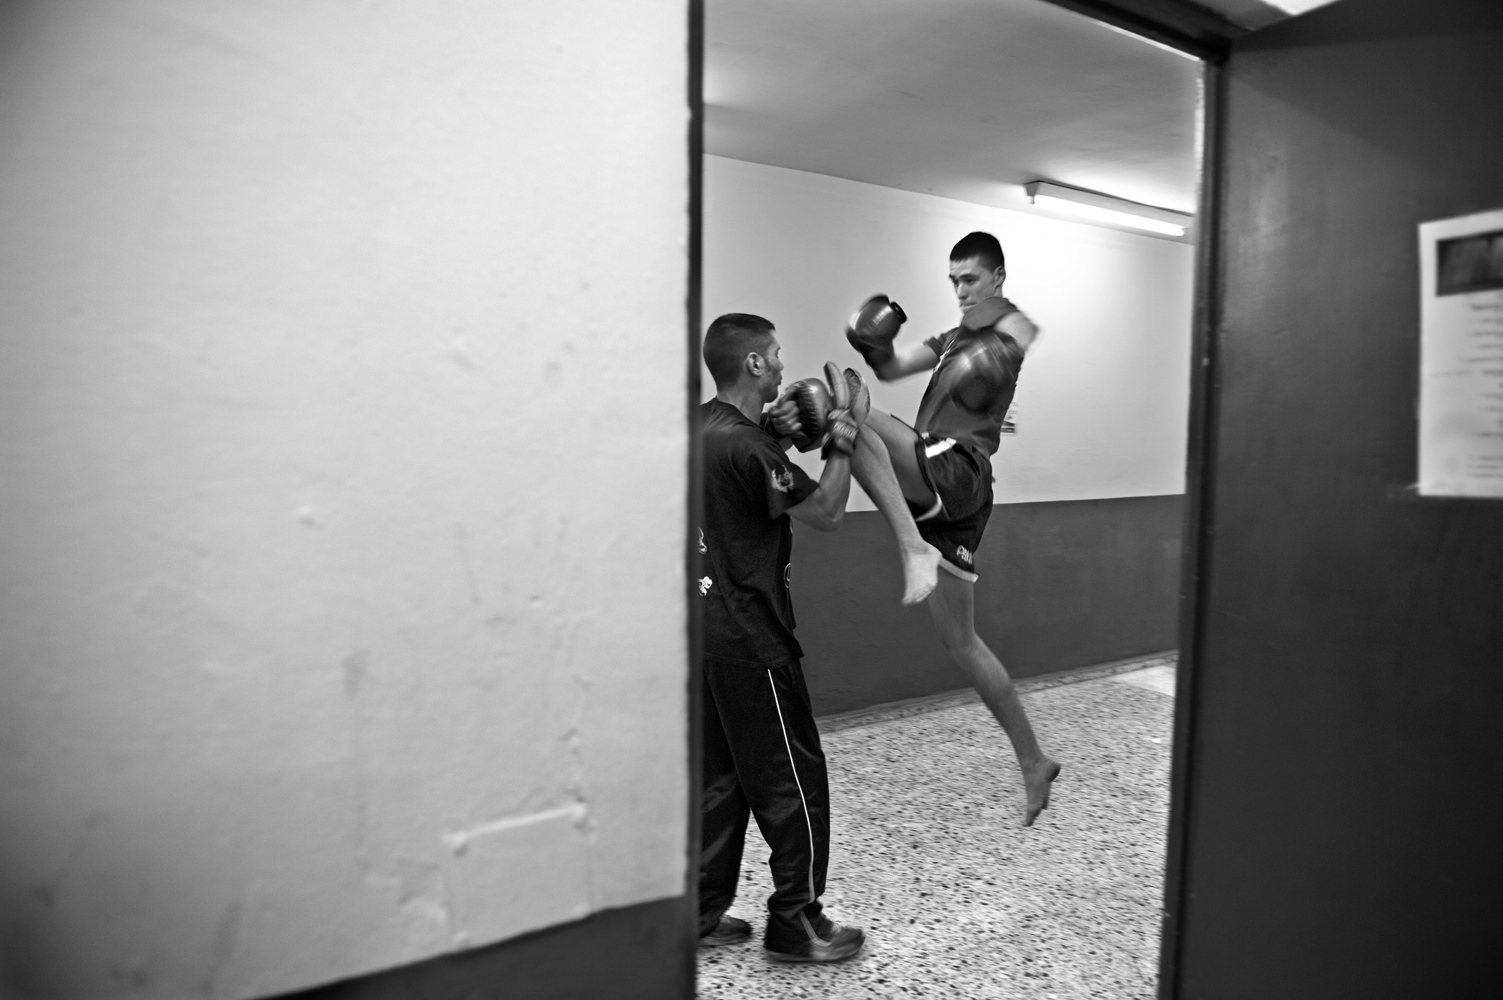 In the moments before the combat it is important to be fully concentrated, with body and mind ready to fight.  Some fighters trained so far until combat, others rest relaxed in the locker room.